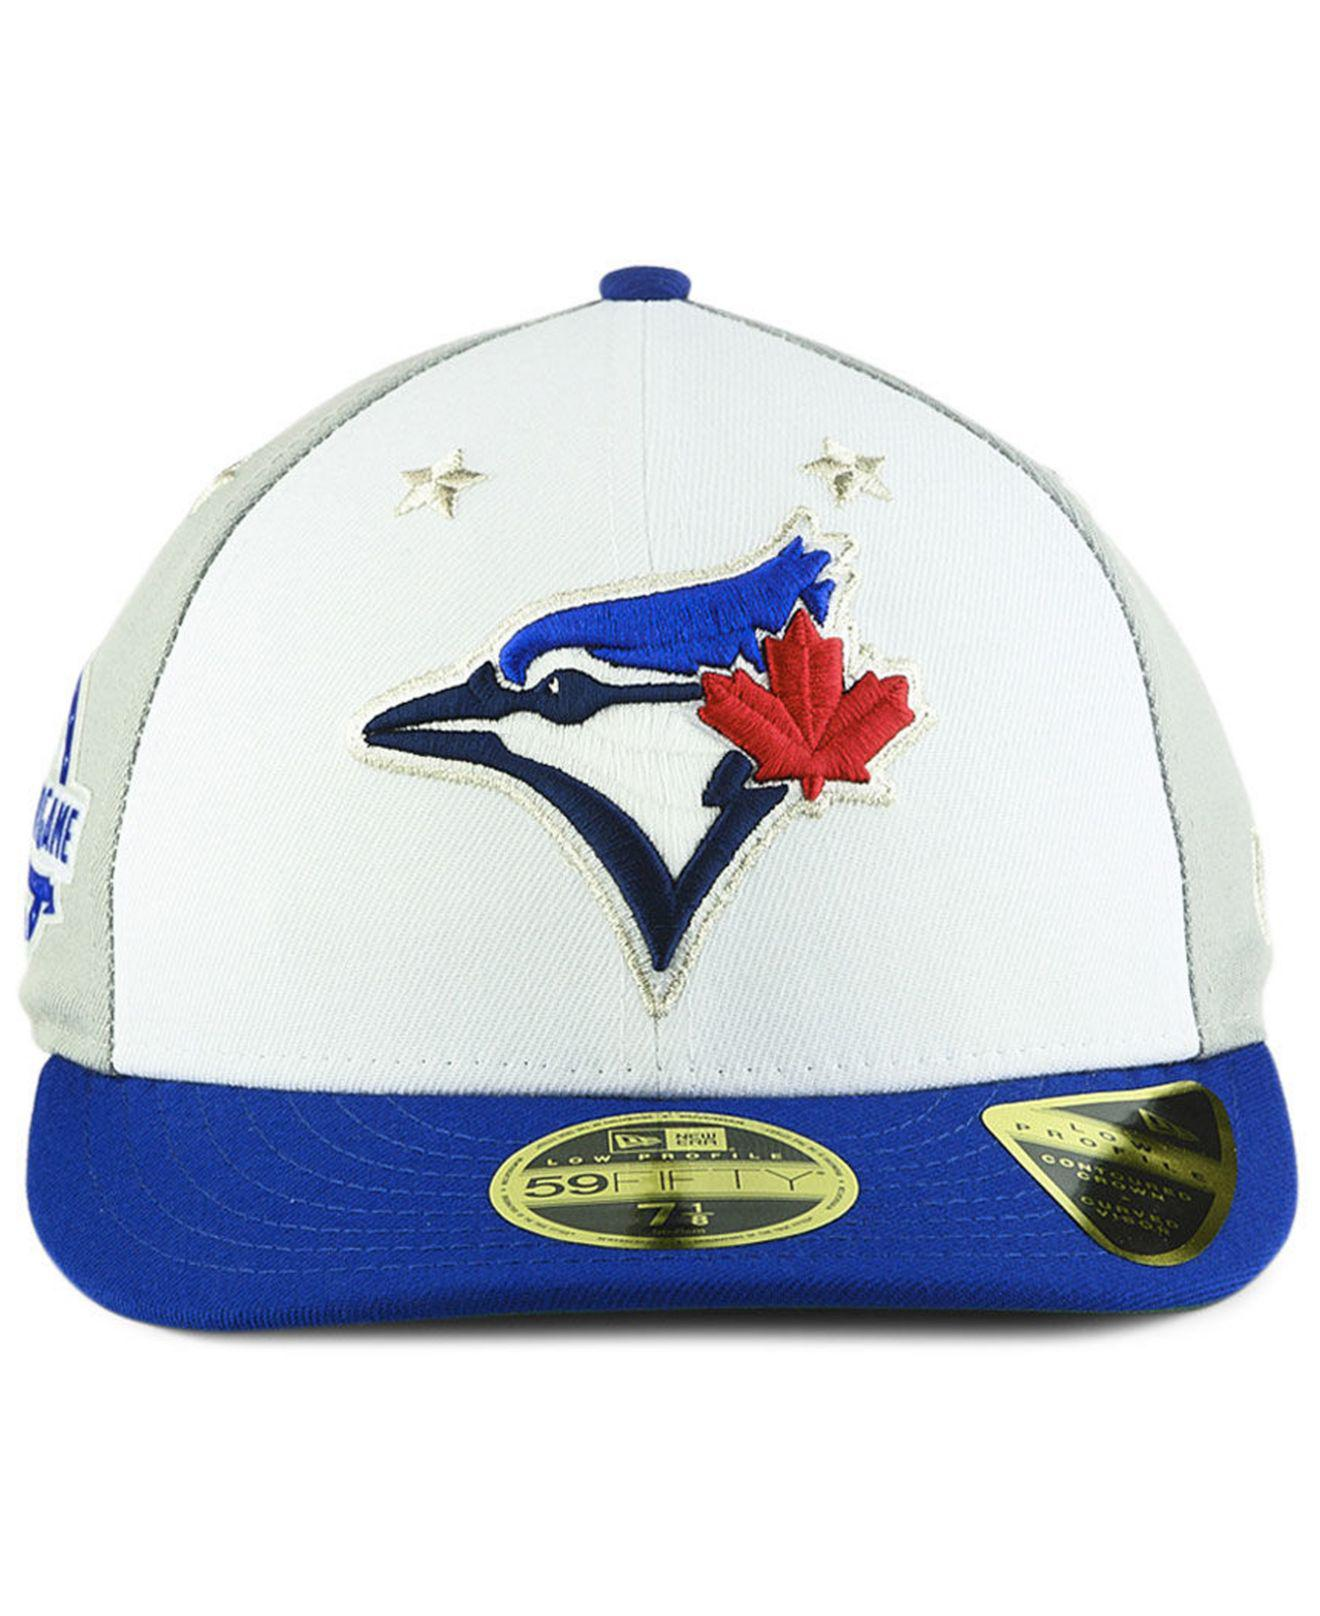 153bb7043d3 Lyst - KTZ Toronto Blue Jays All Star Game Patch Low Profile 59fifty Fitted  Cap 2018 in Blue for Men